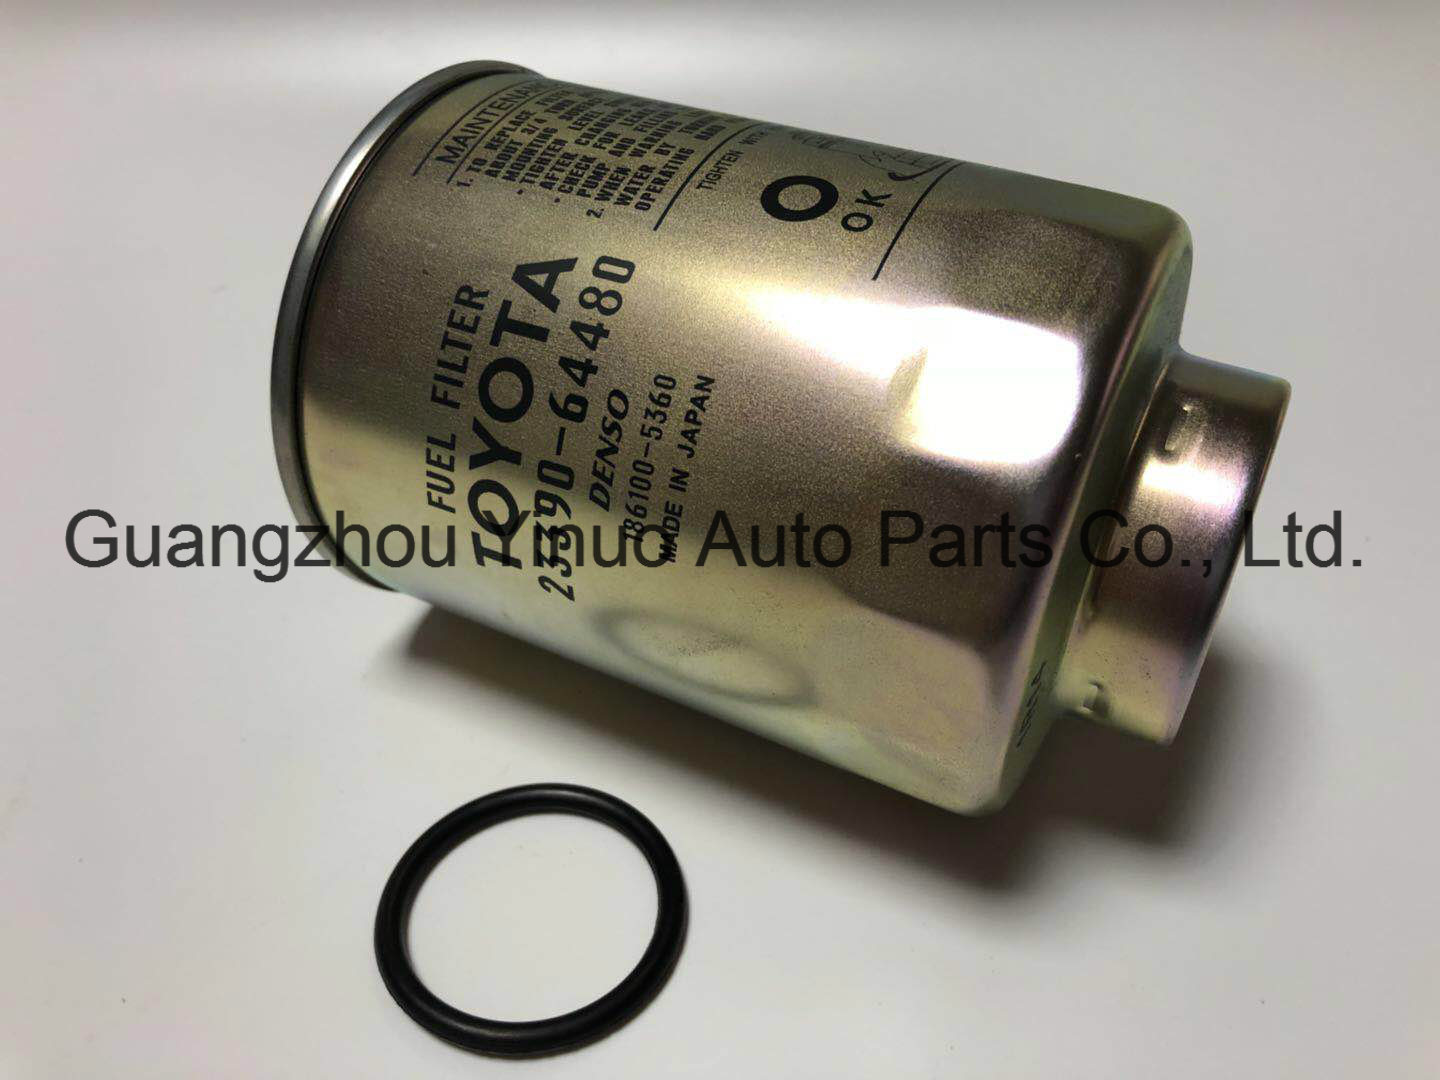 hight resolution of china performance fuel water separator fuel filter 23390 64480 for land cruiser coaster hilux hiace china 23390 64480 23390 64480